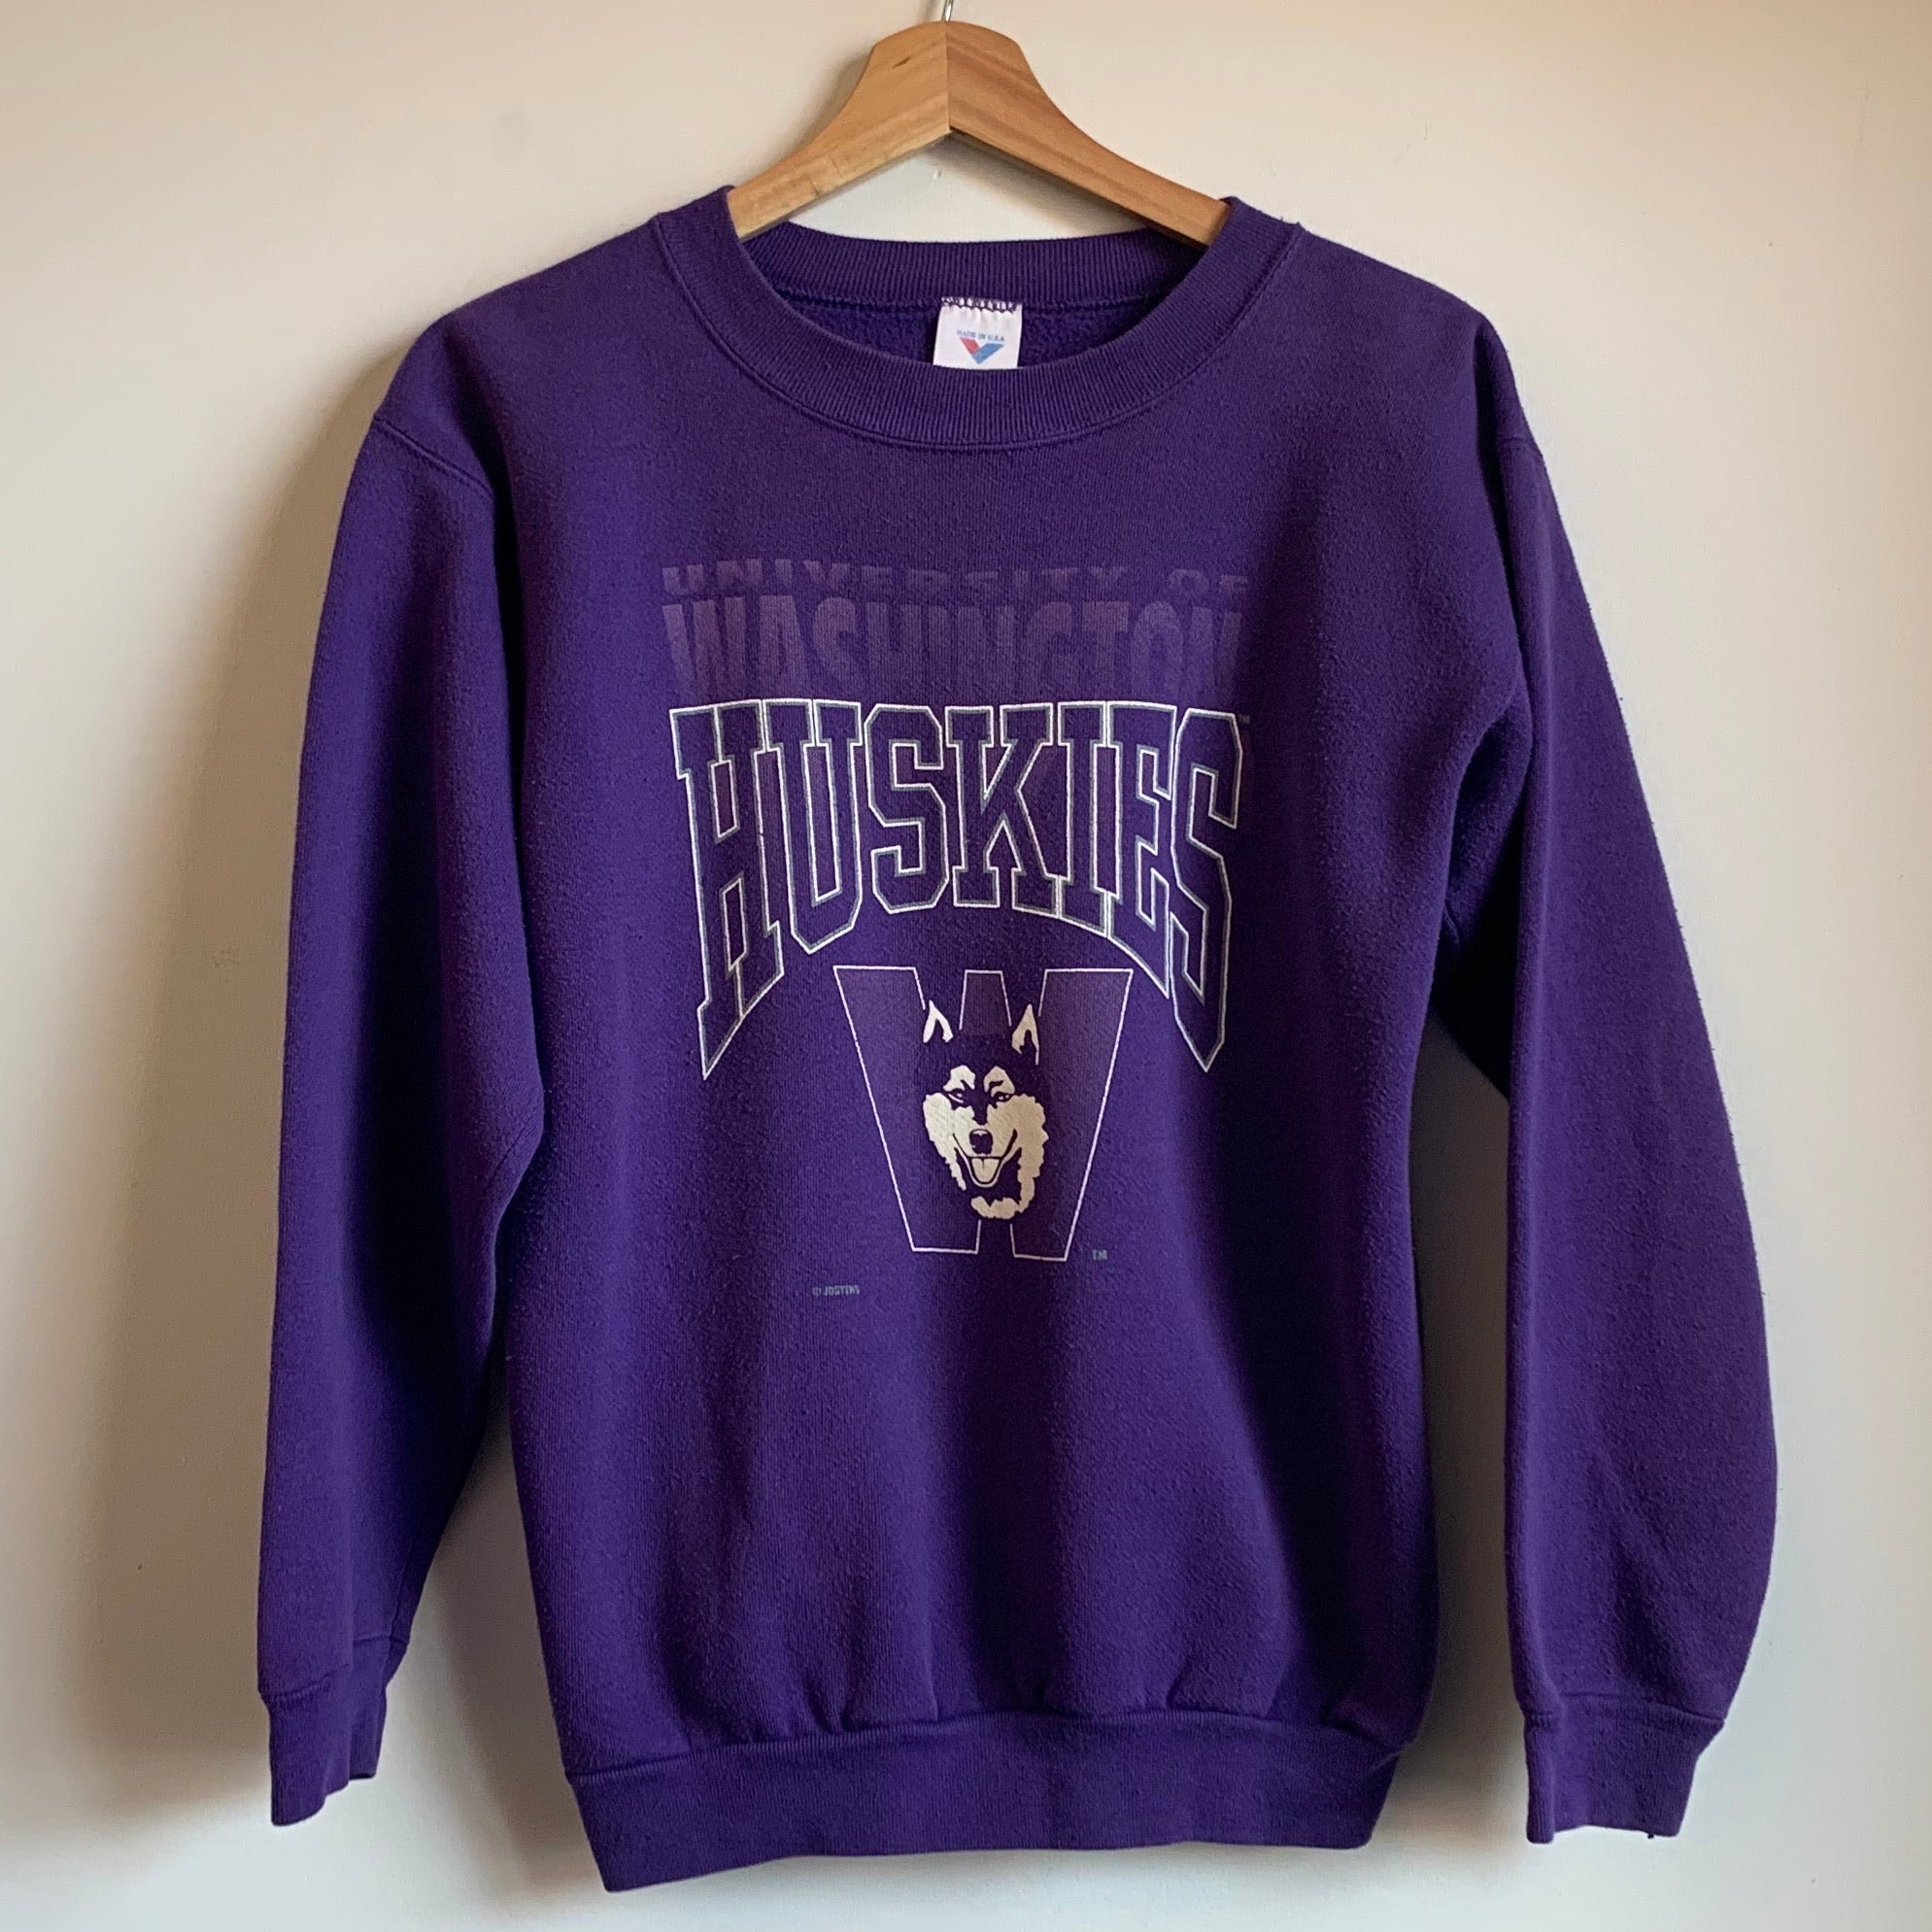 Jostens Washington Huskies Purple Youth Crewneck Sweatshirt